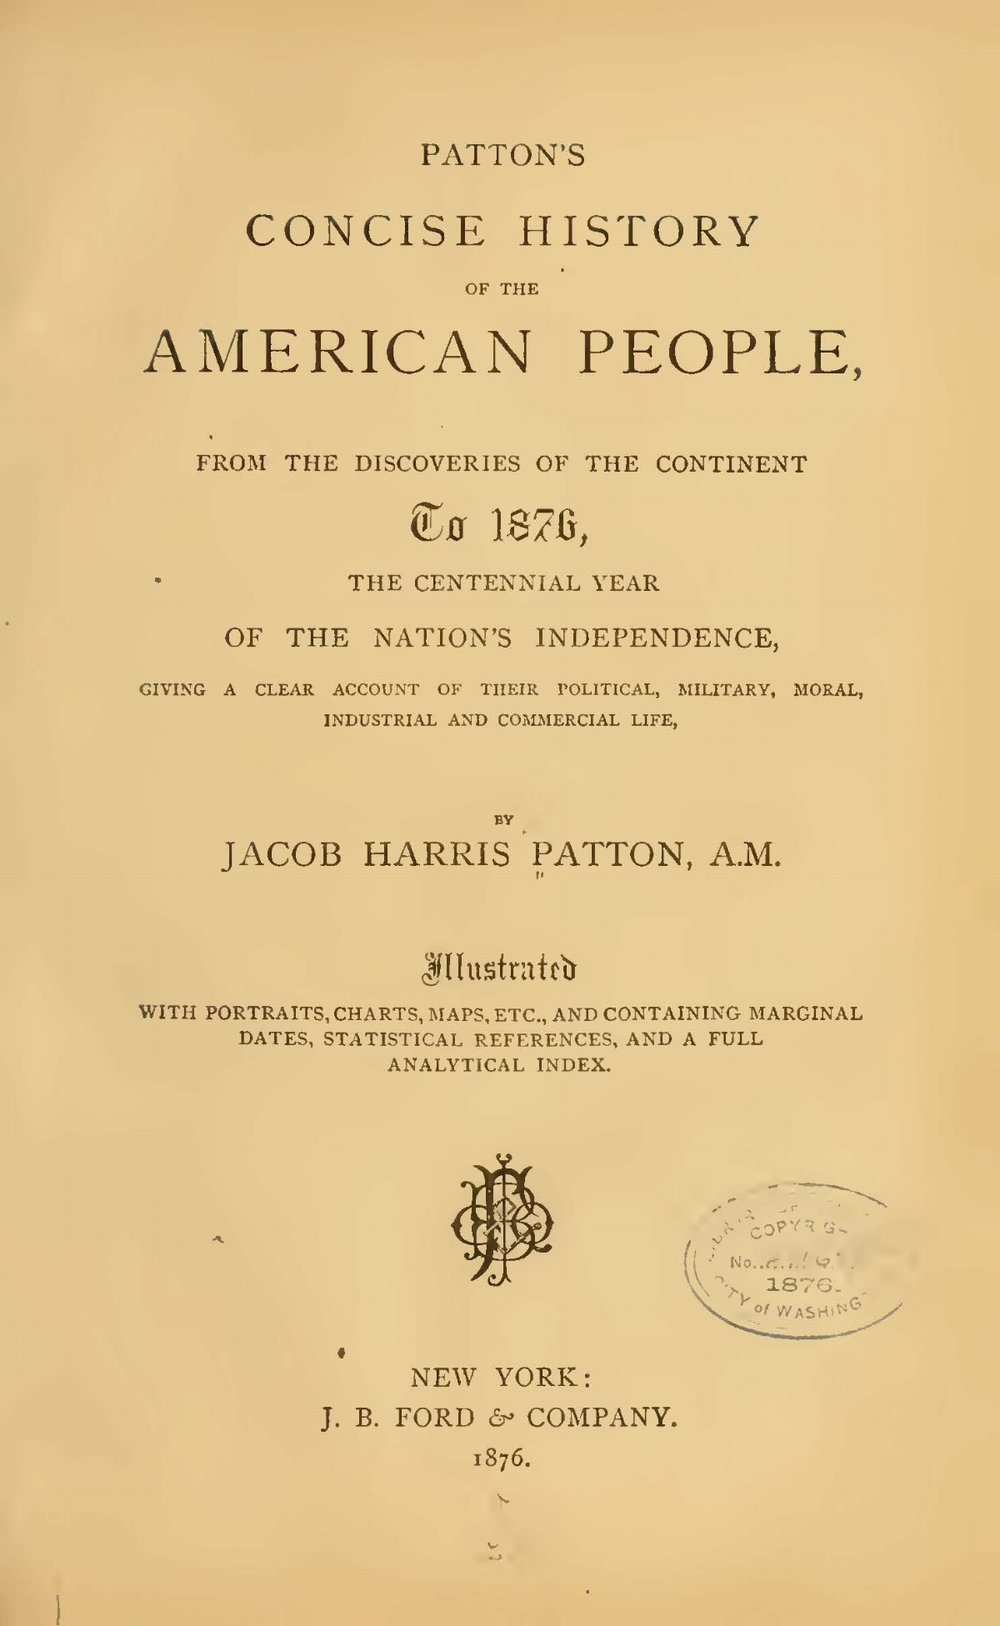 Patton, Jacob Harris, Concise History of the American People Title Page.jpg